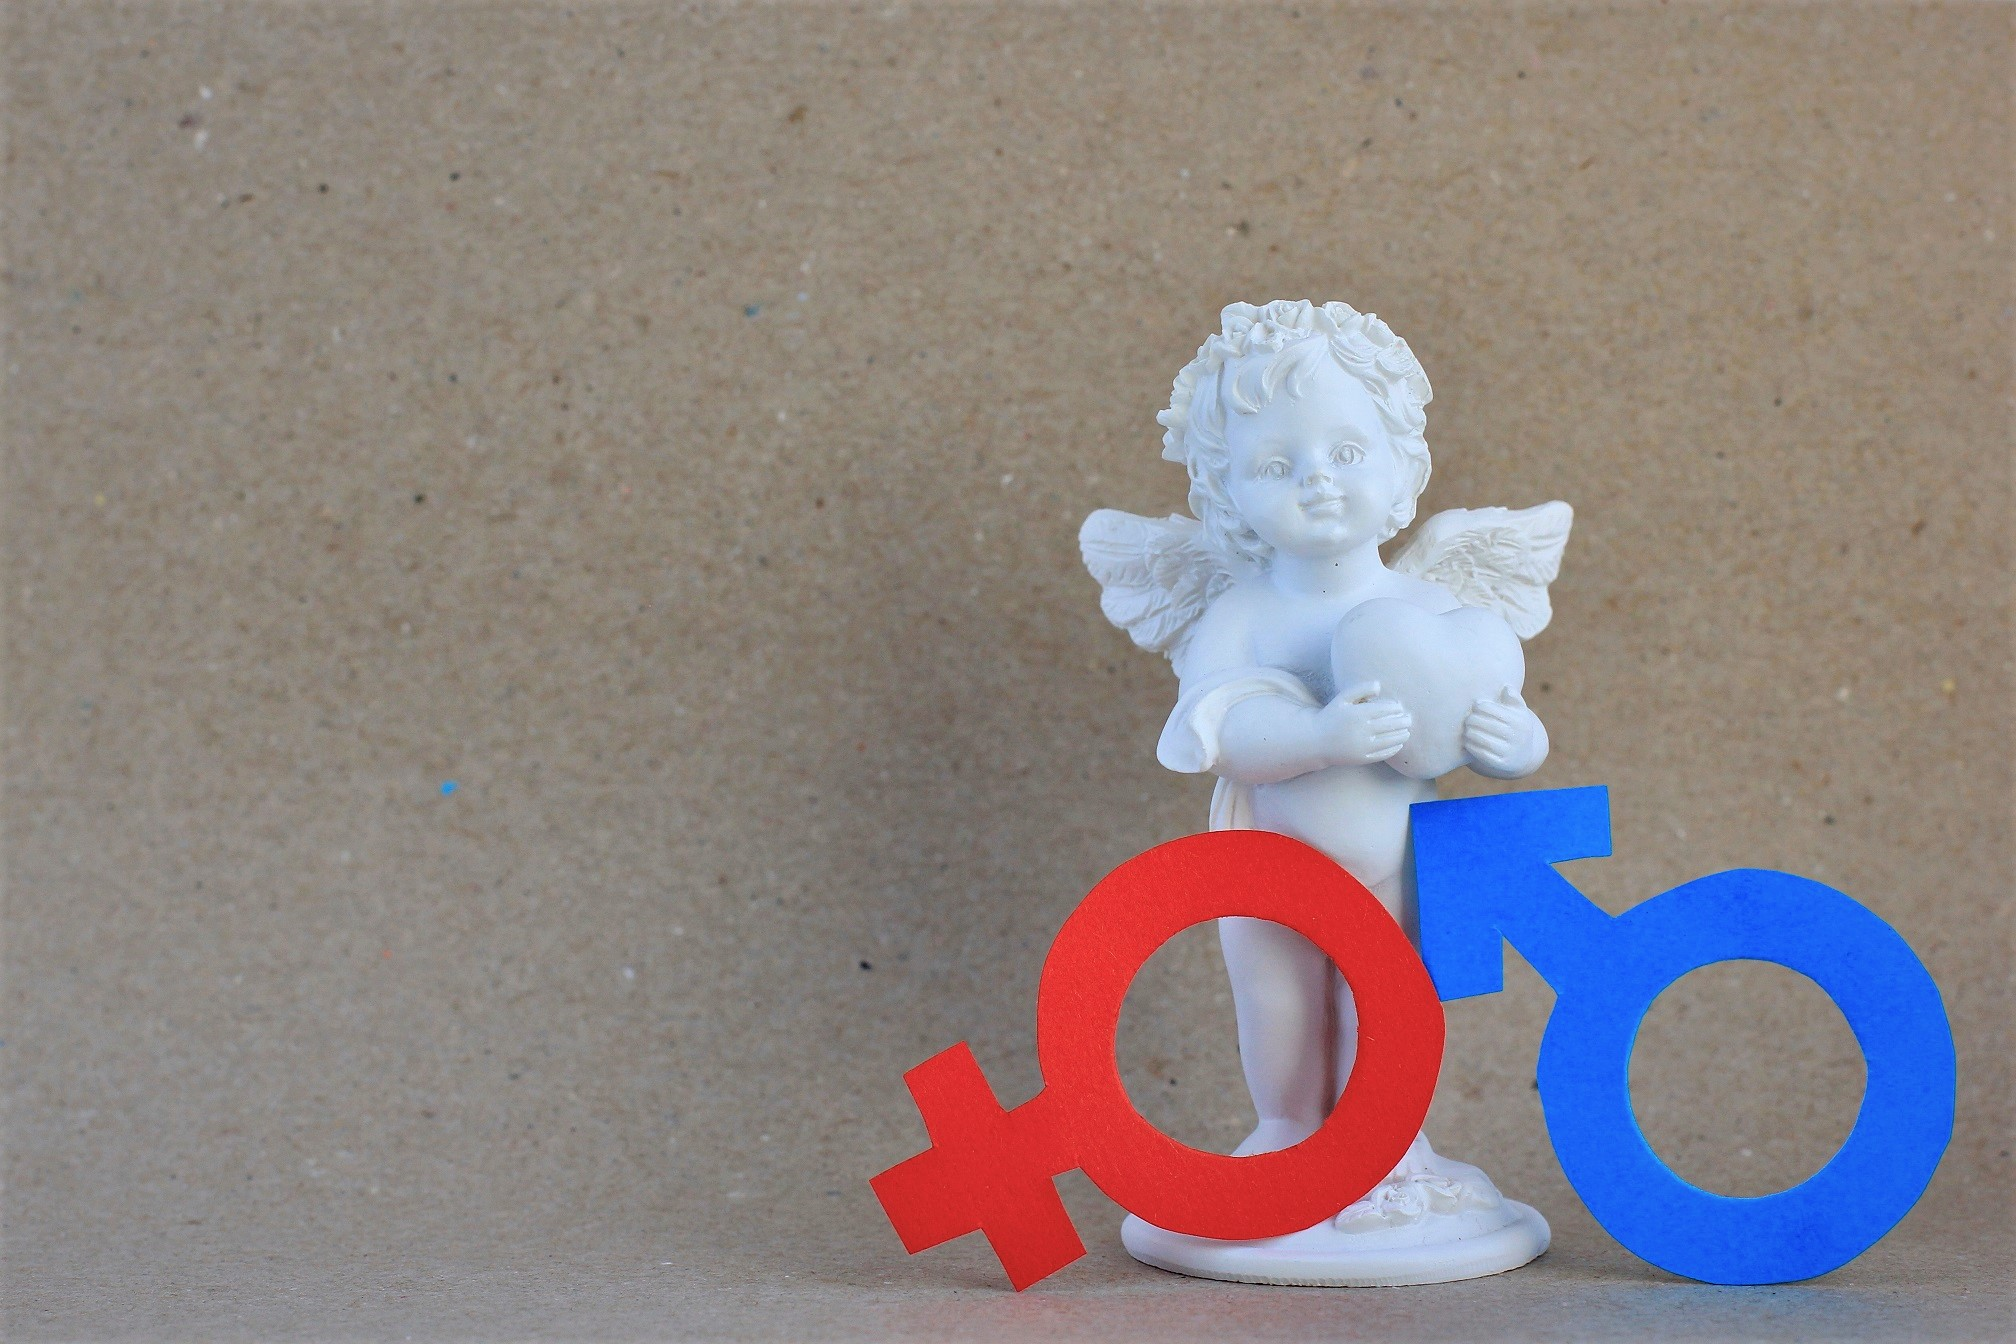 figurine-of-angel-with-red-female-and-blue-male-pa-YFC4T7H